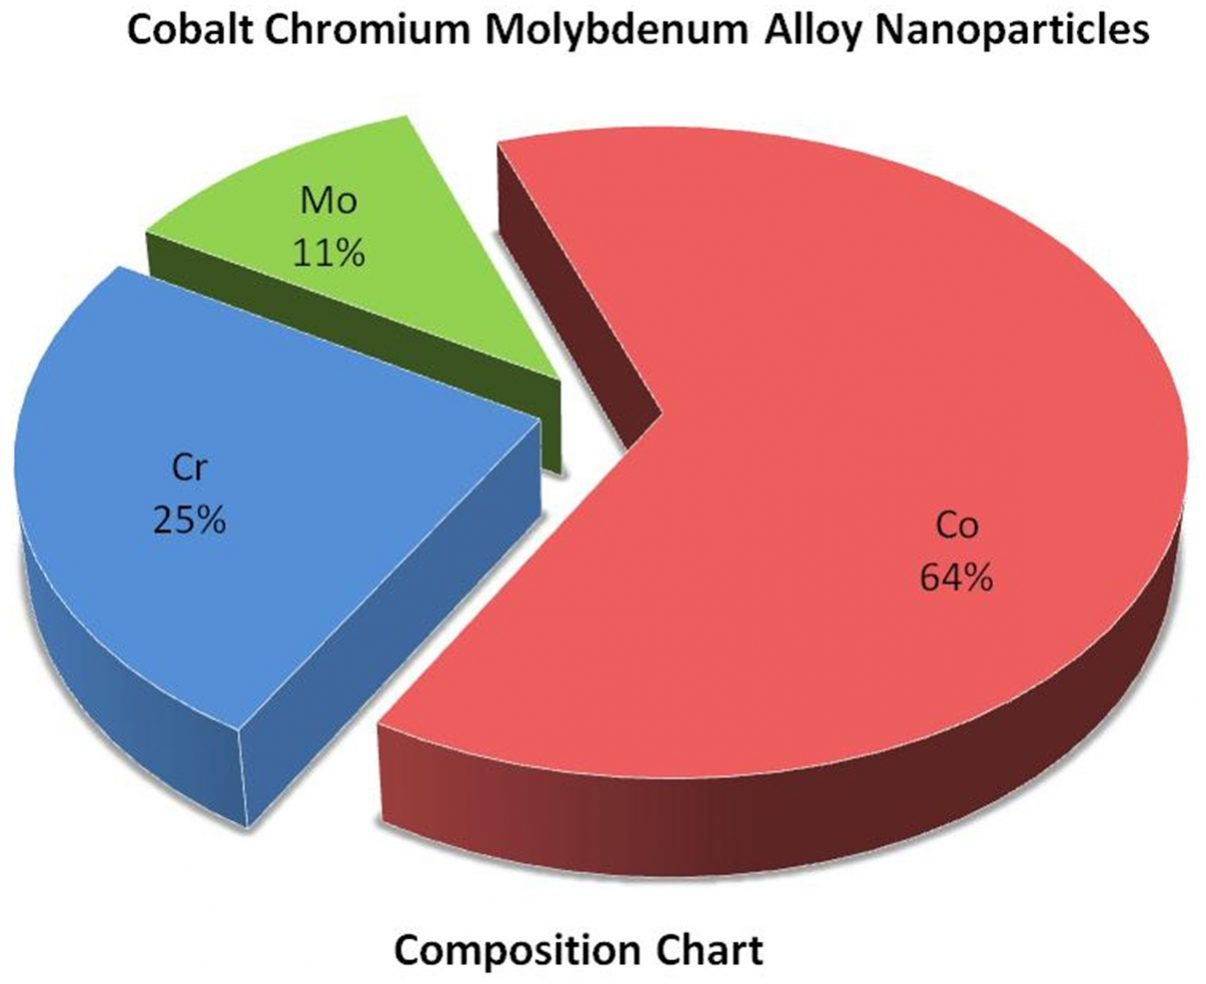 Composition Chart - Co:Cr:Mo Alloy